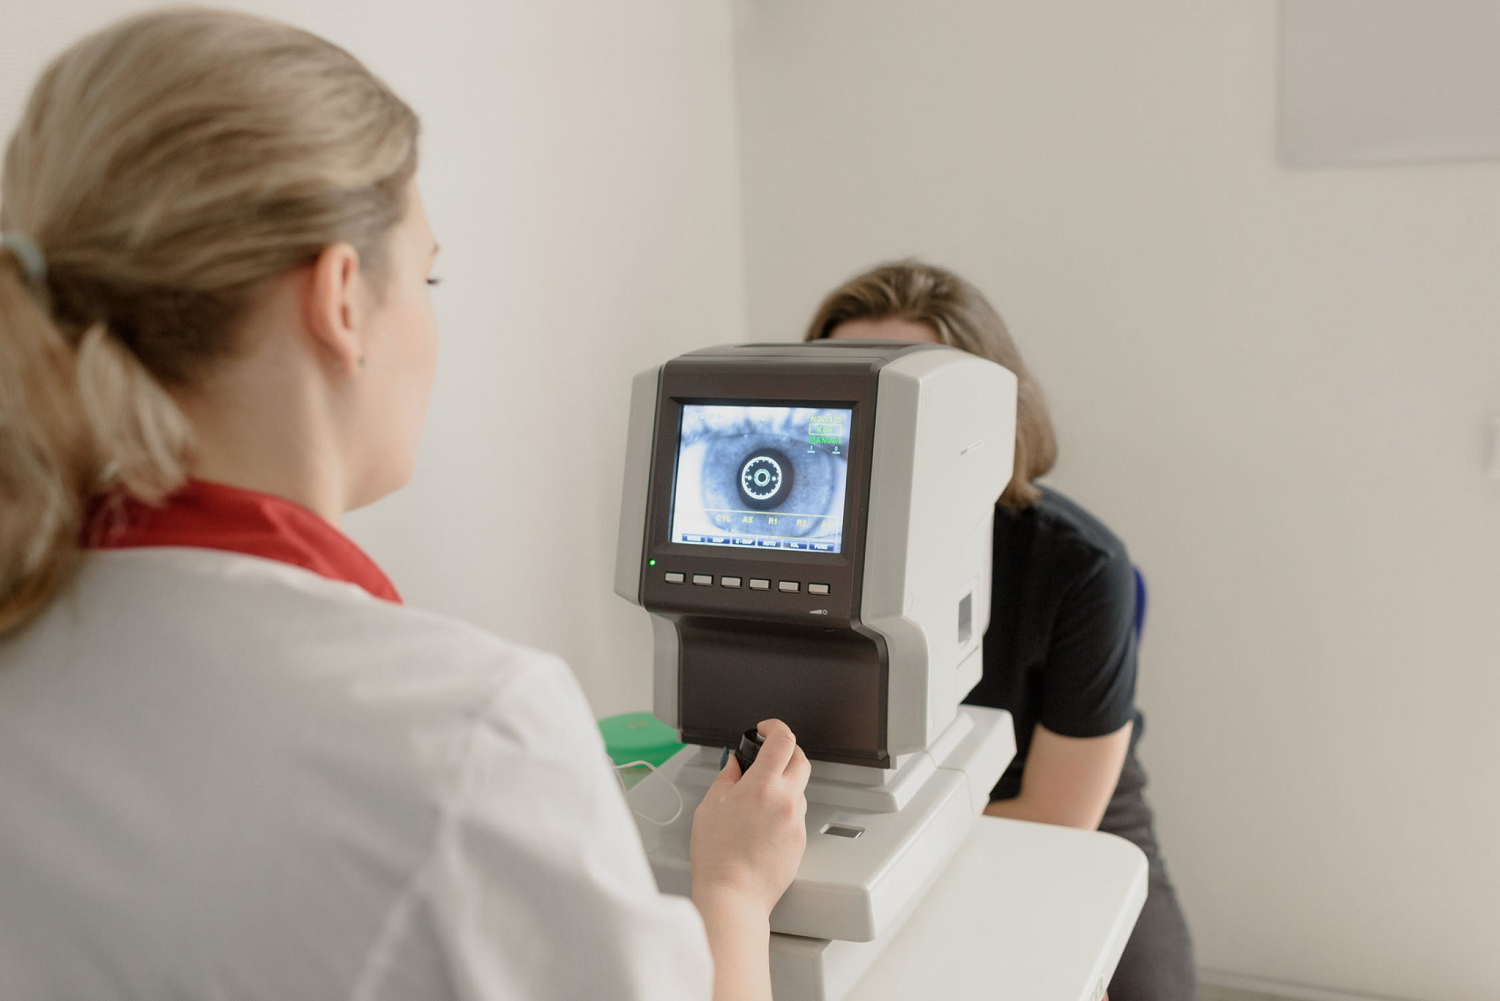 ophthalmologist checking eyesight of woman on vision screener